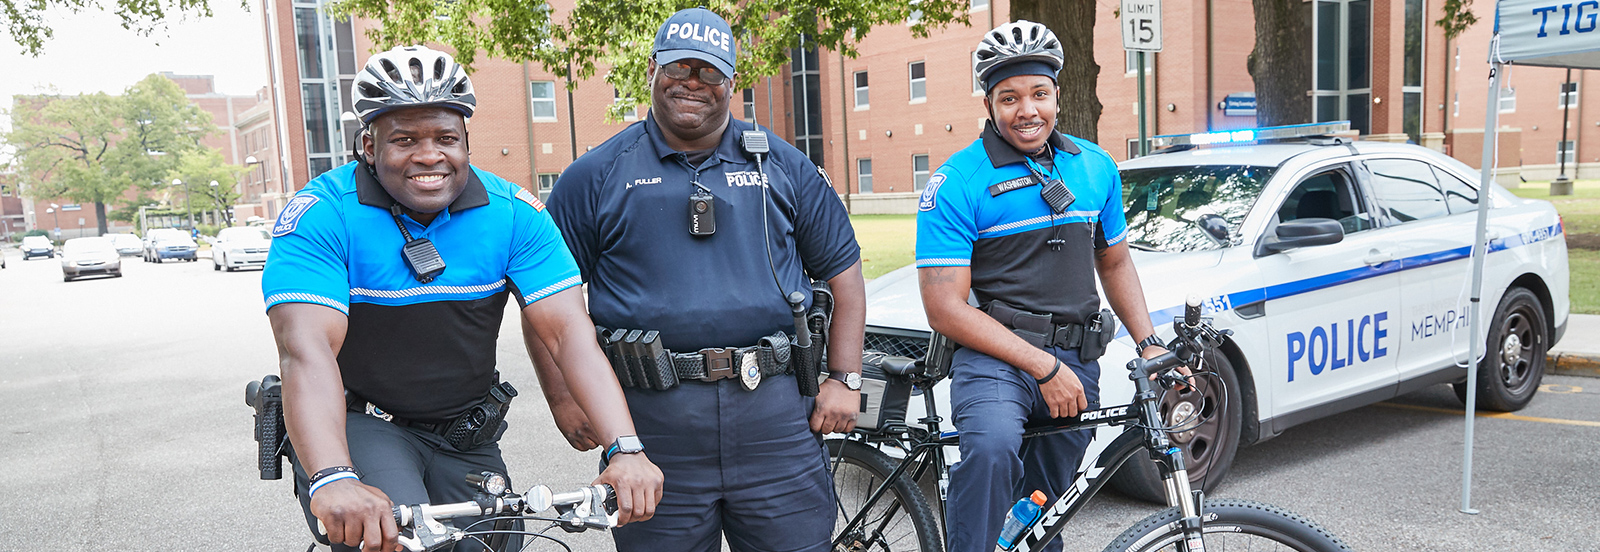 police officers with bikes